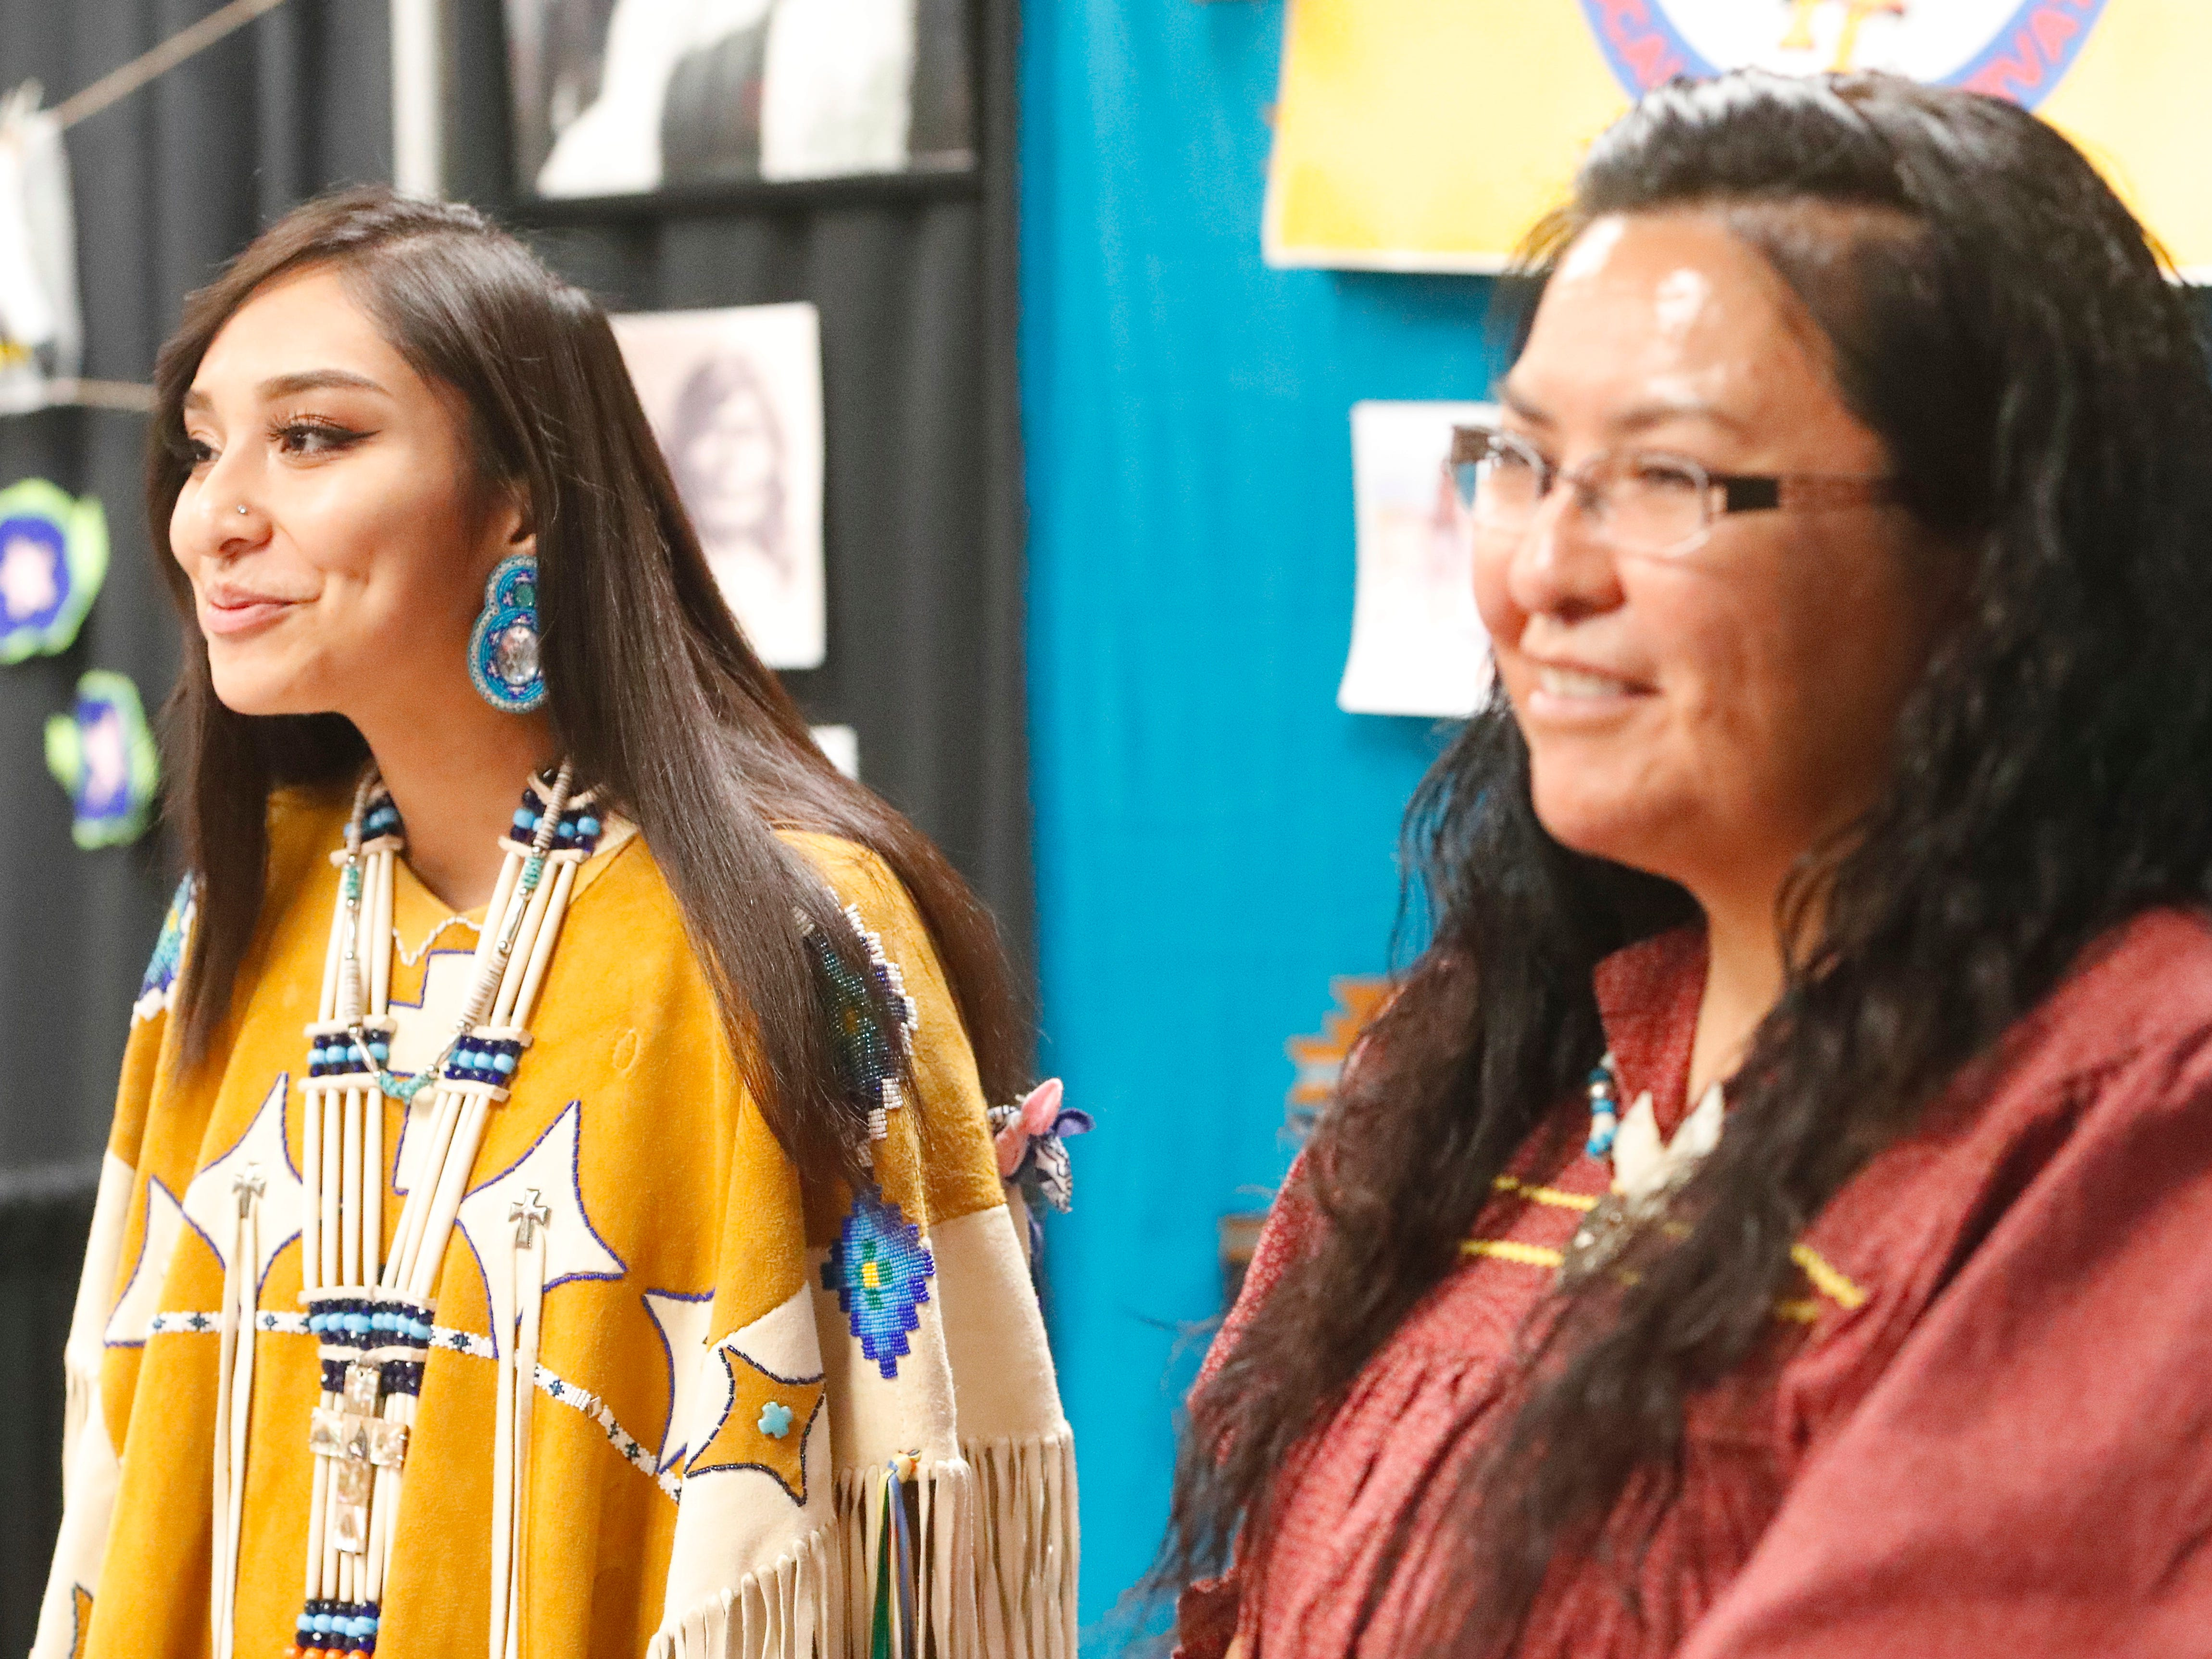 Trinity Enjady, left, and Janice Merino greet visitors to their Mescalero Apache booth during the Festival of Cultures hosted by Bethel Church on Feb. 9, 2019.